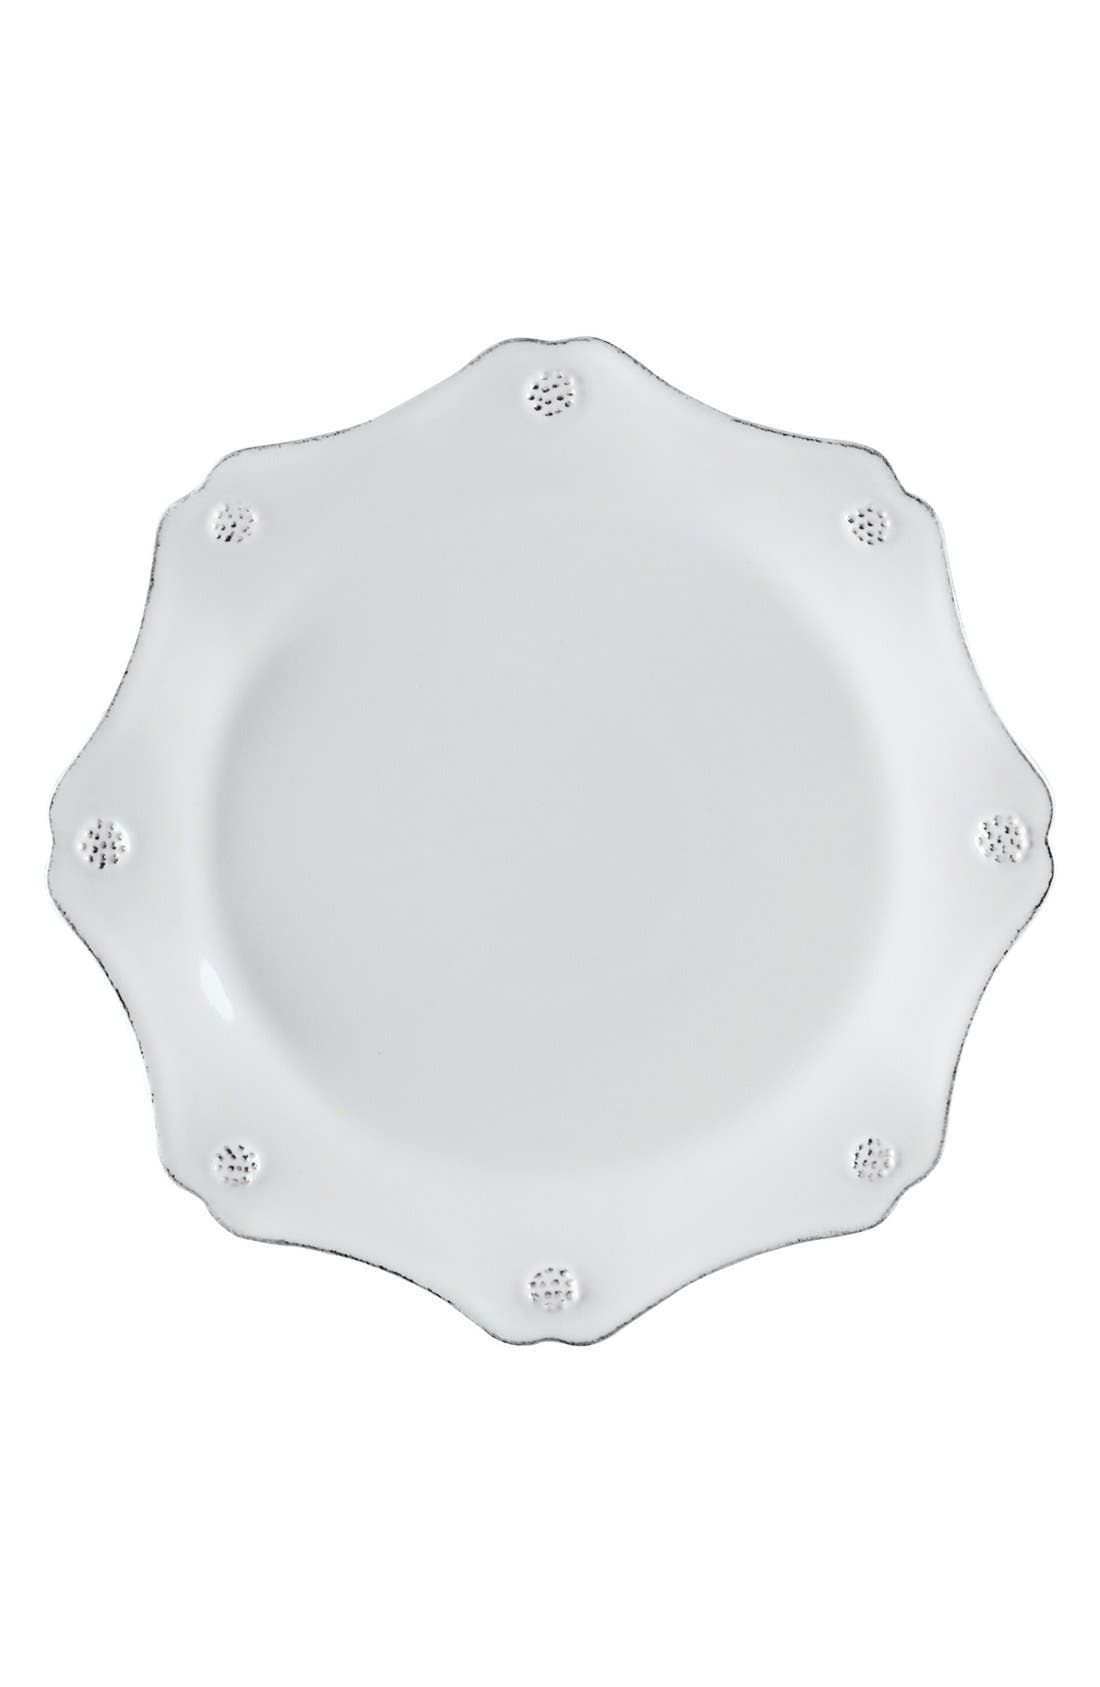 'Berry and Thread' Scalloped Salad Plate,                         Main,                         color, Whitewash